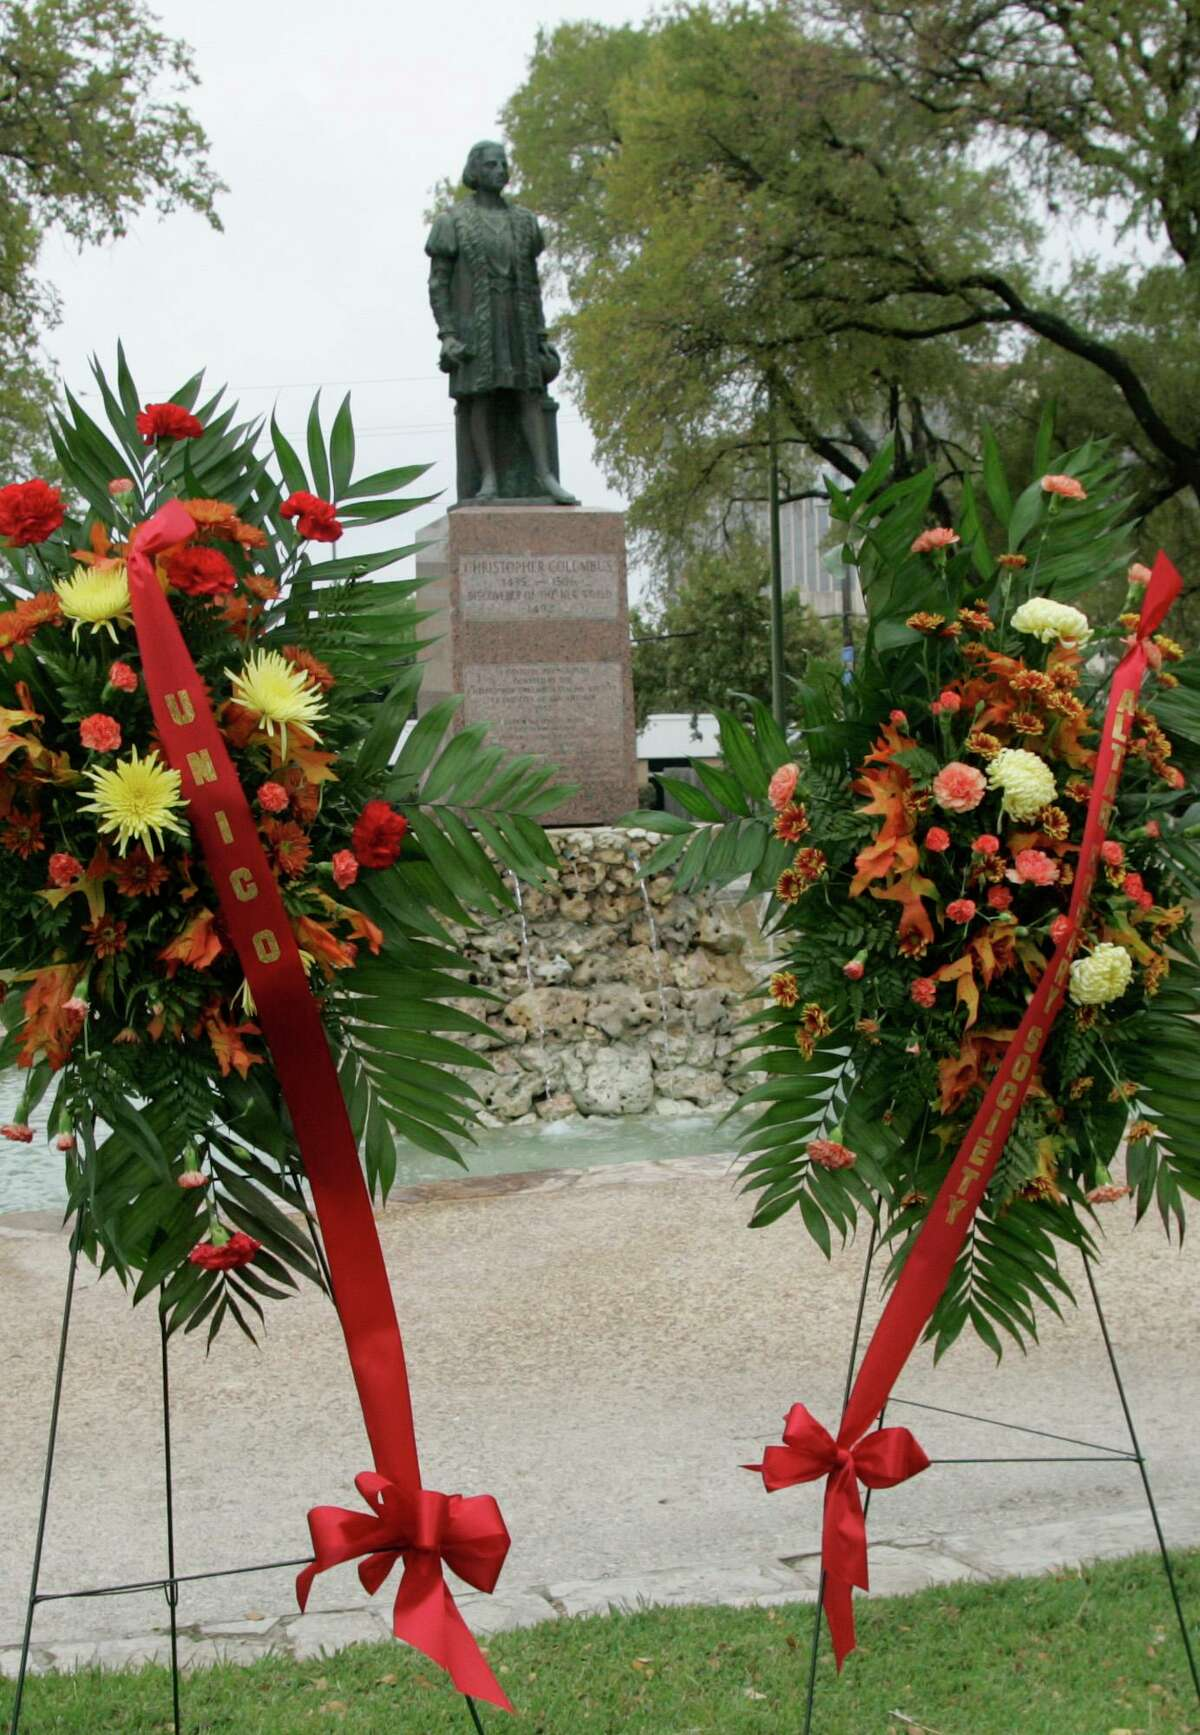 Wreaths bracket the statue of Christopher Columbus at Columbus Park on the edge of downtown San Antonio on Sunday, Oct. 12, 2008, following the San Antonio Christopher Columbus Italian Society's celebration of the explorer's1492 voyage of discovery. A procession from San Francisco di Paola Catholic Church to the park next door ended with the wreath-laying ceremony at the statue.